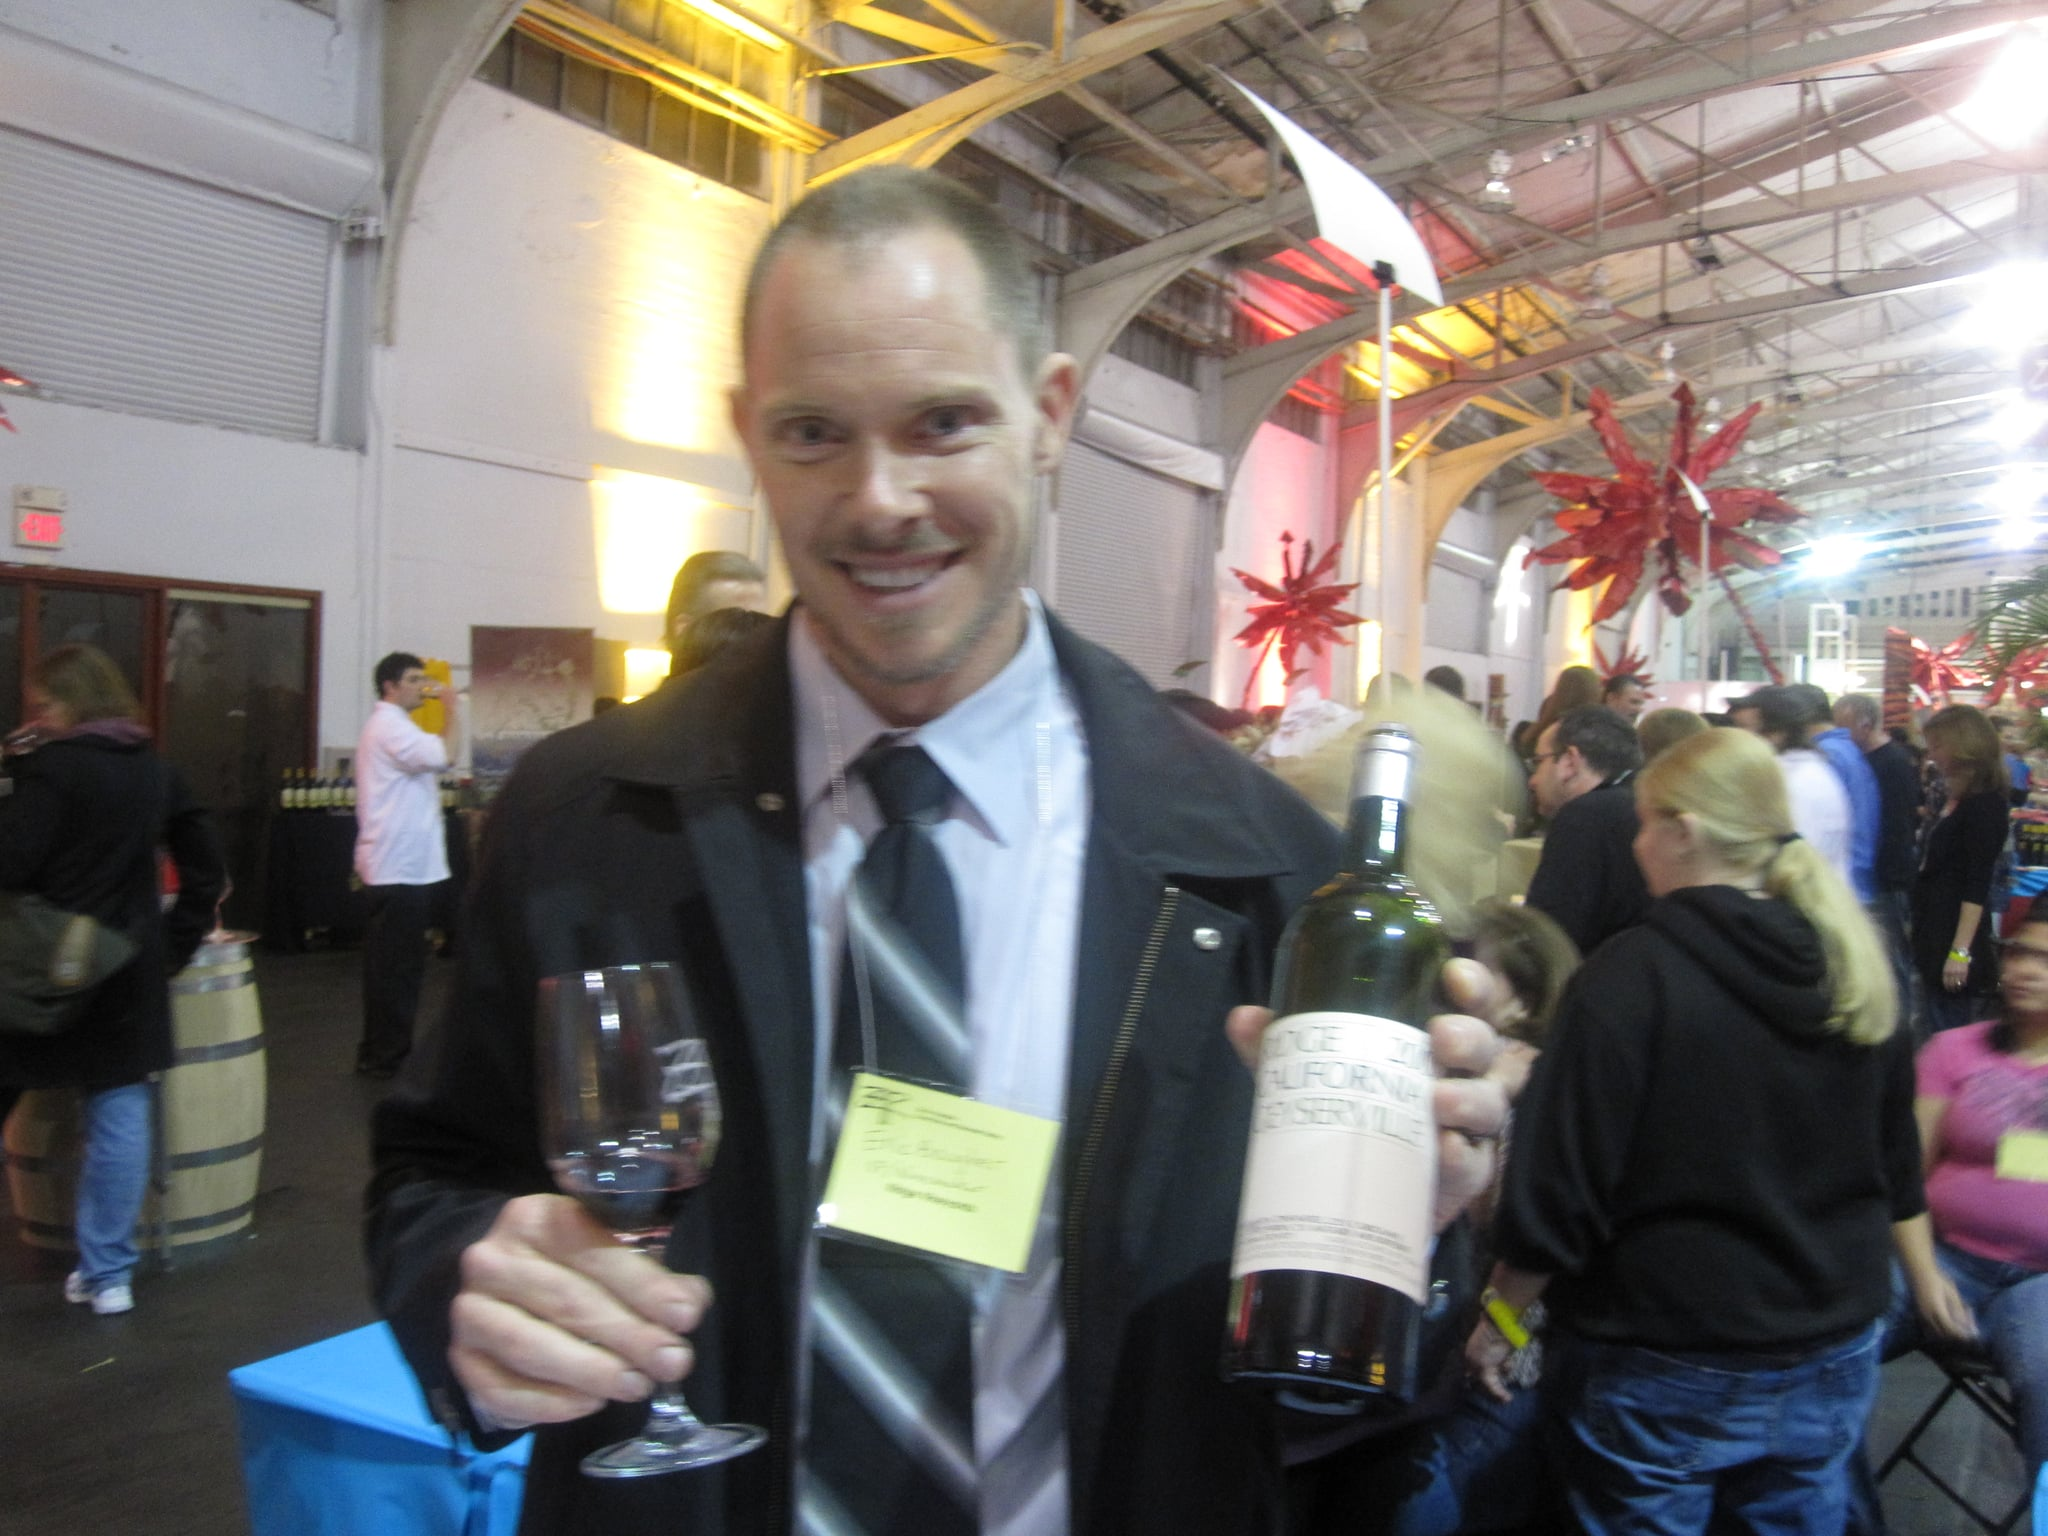 The wine was poured by one of the wine makers! He was very helpful and knowledgeable.